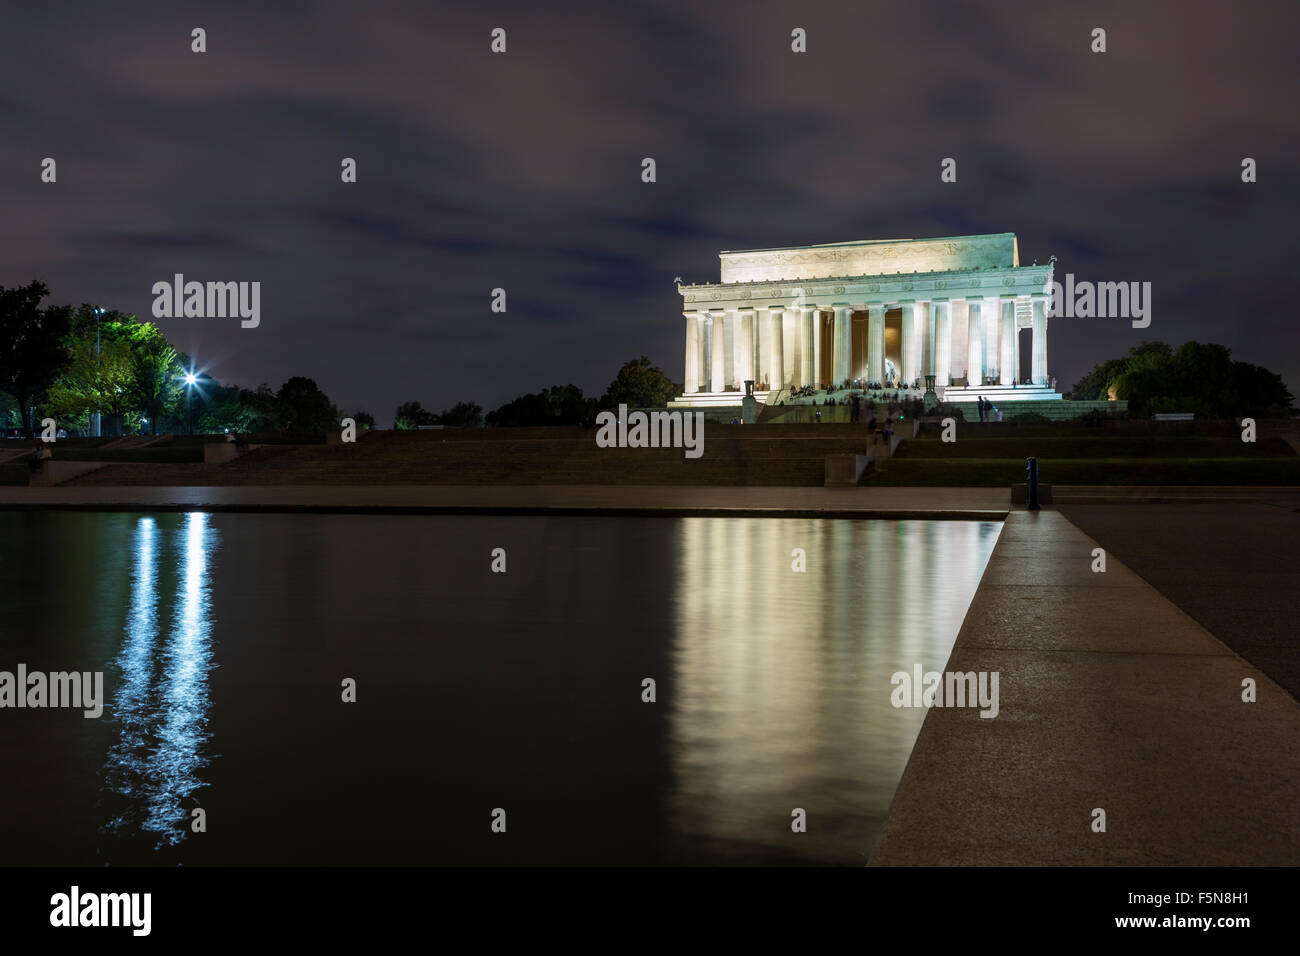 Le Lincoln Memorial à washington dc Photo Stock